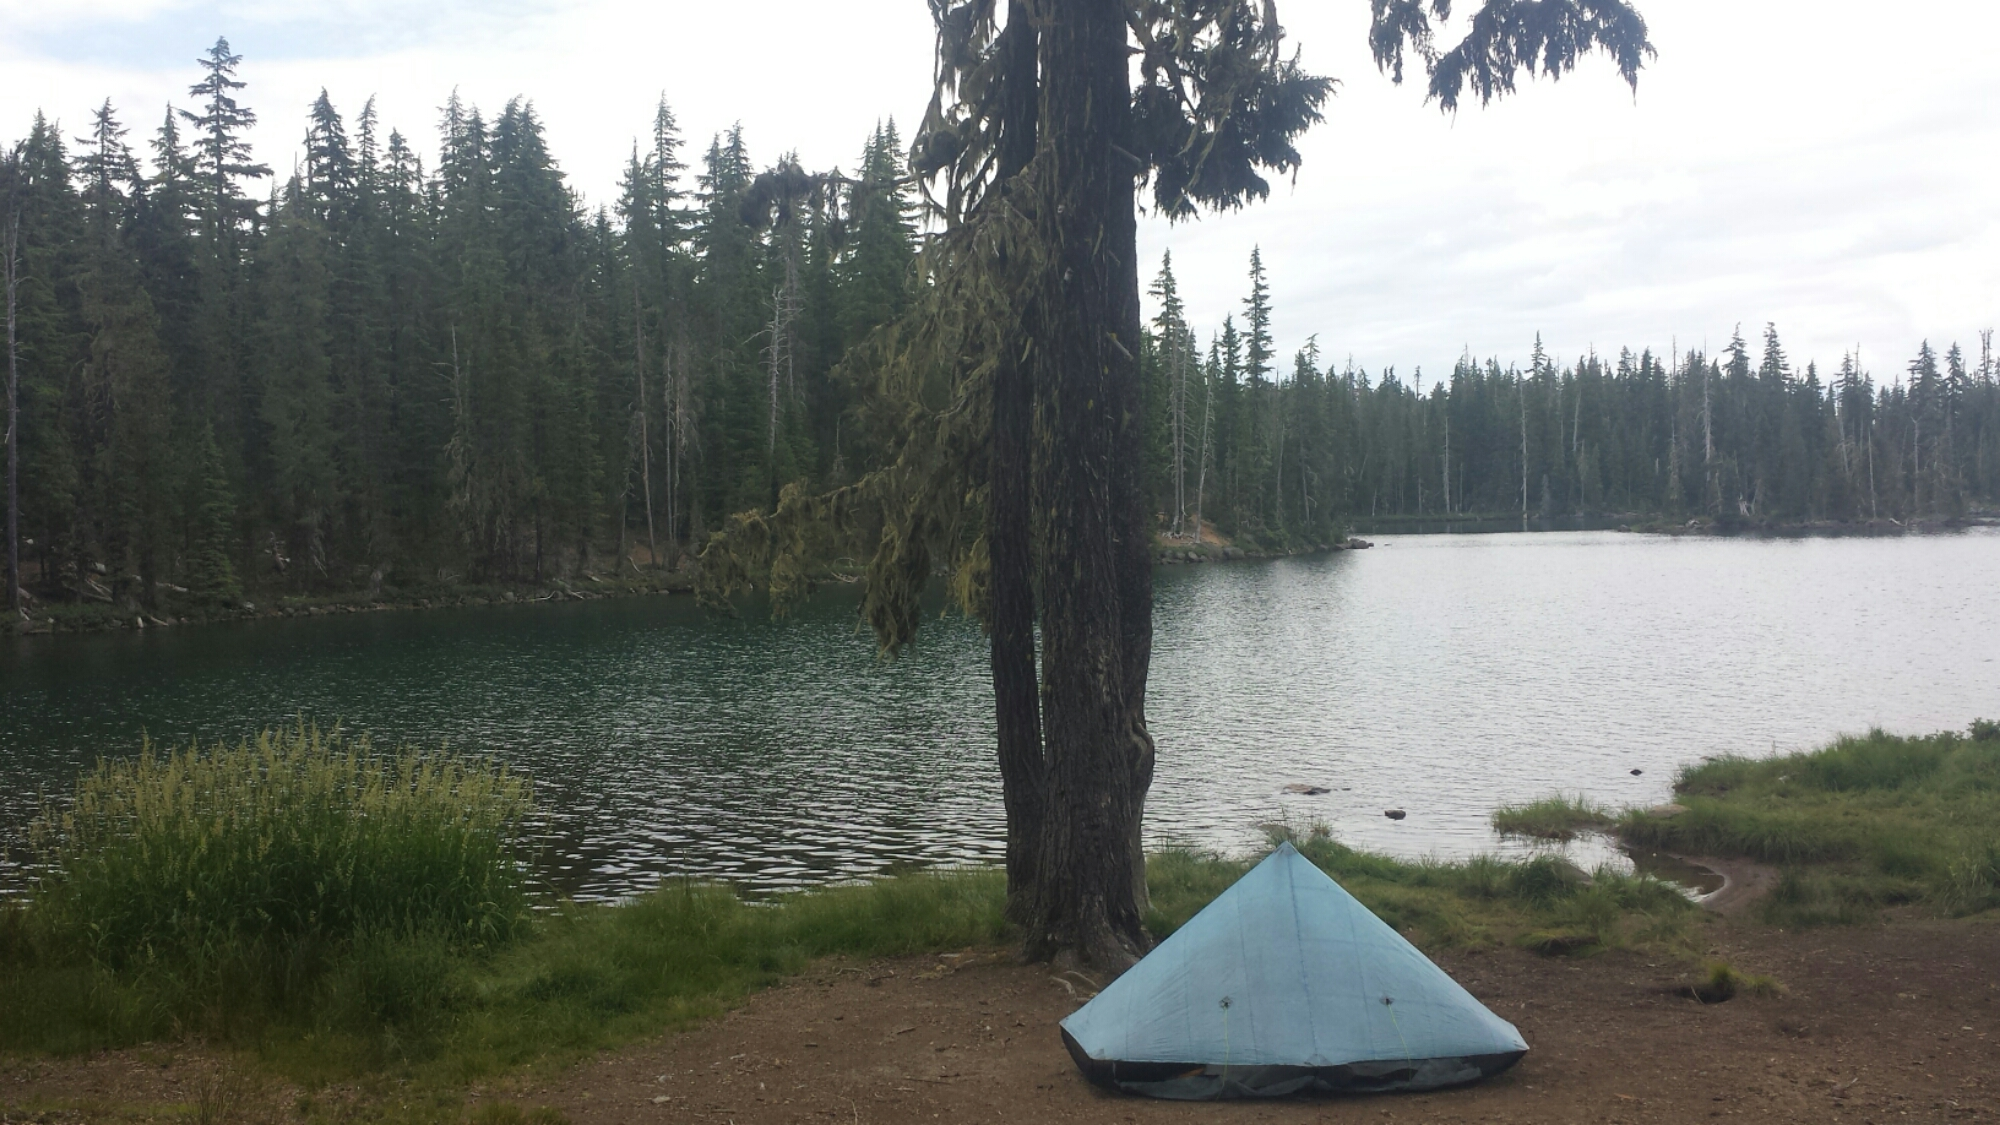 Lunchtime set-up for napping at Summit Lake